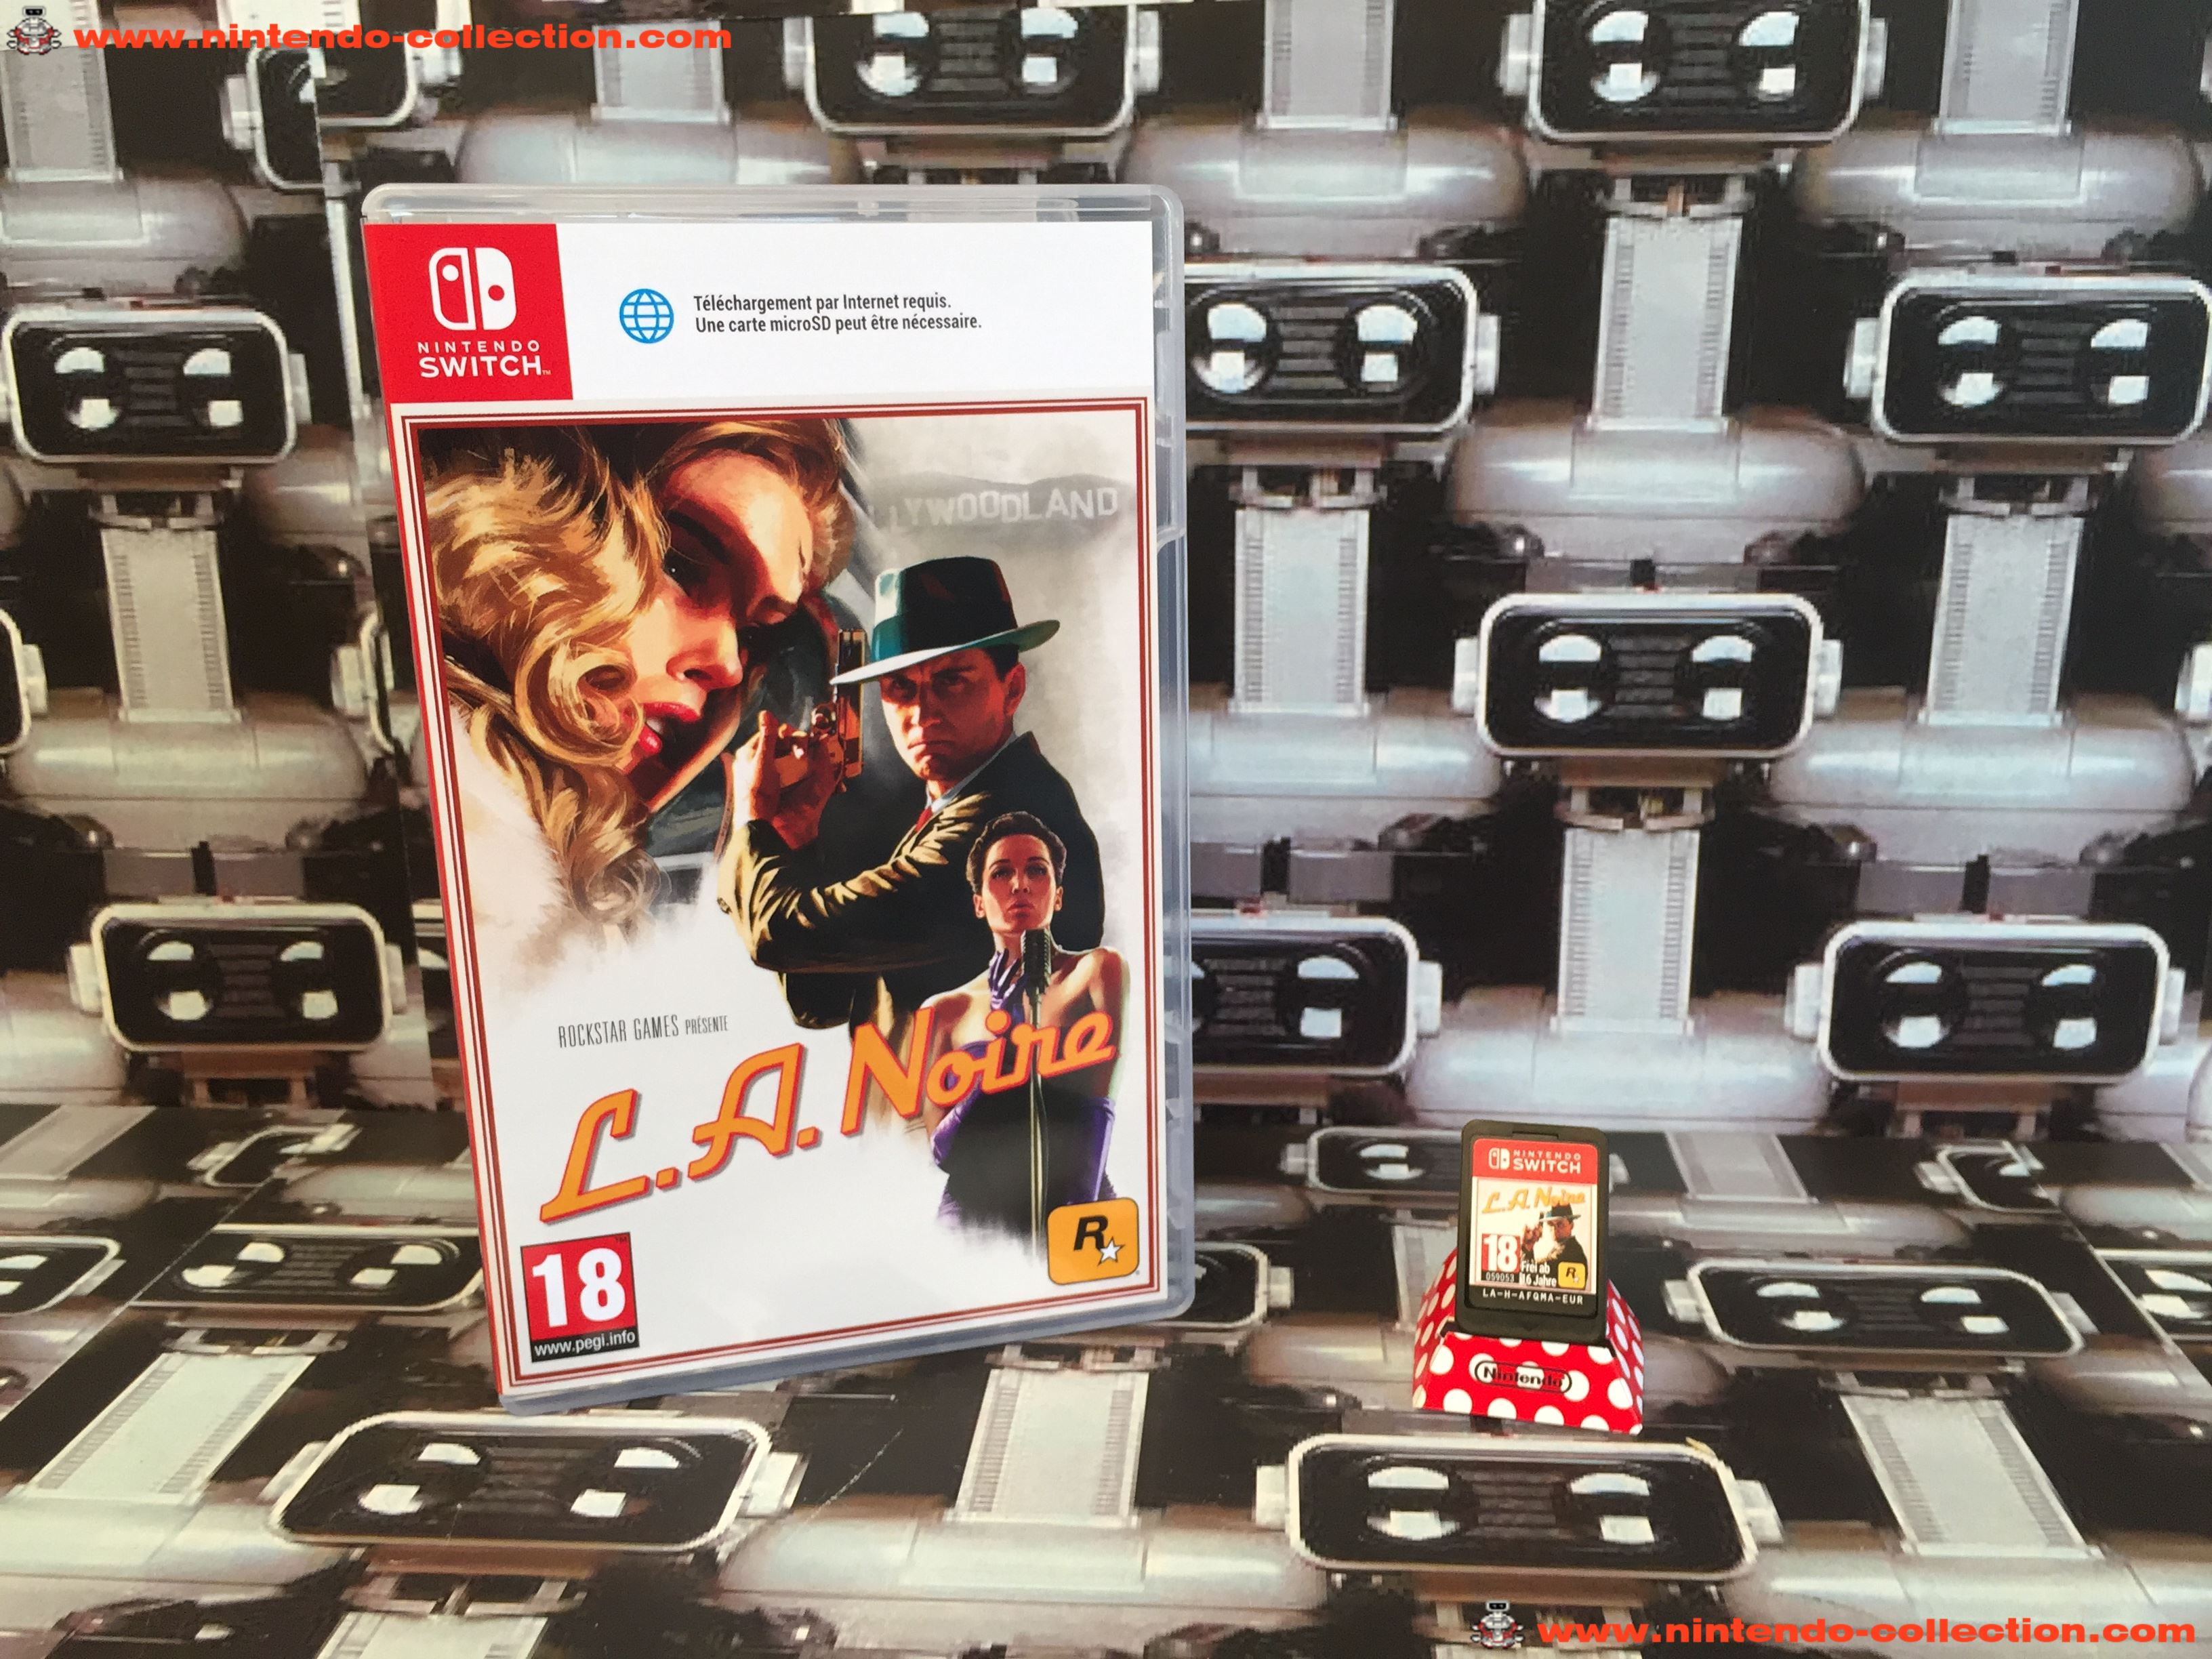 www.nintendo-collection.com - Nintendo Switch Jeux Game L.A. Noire